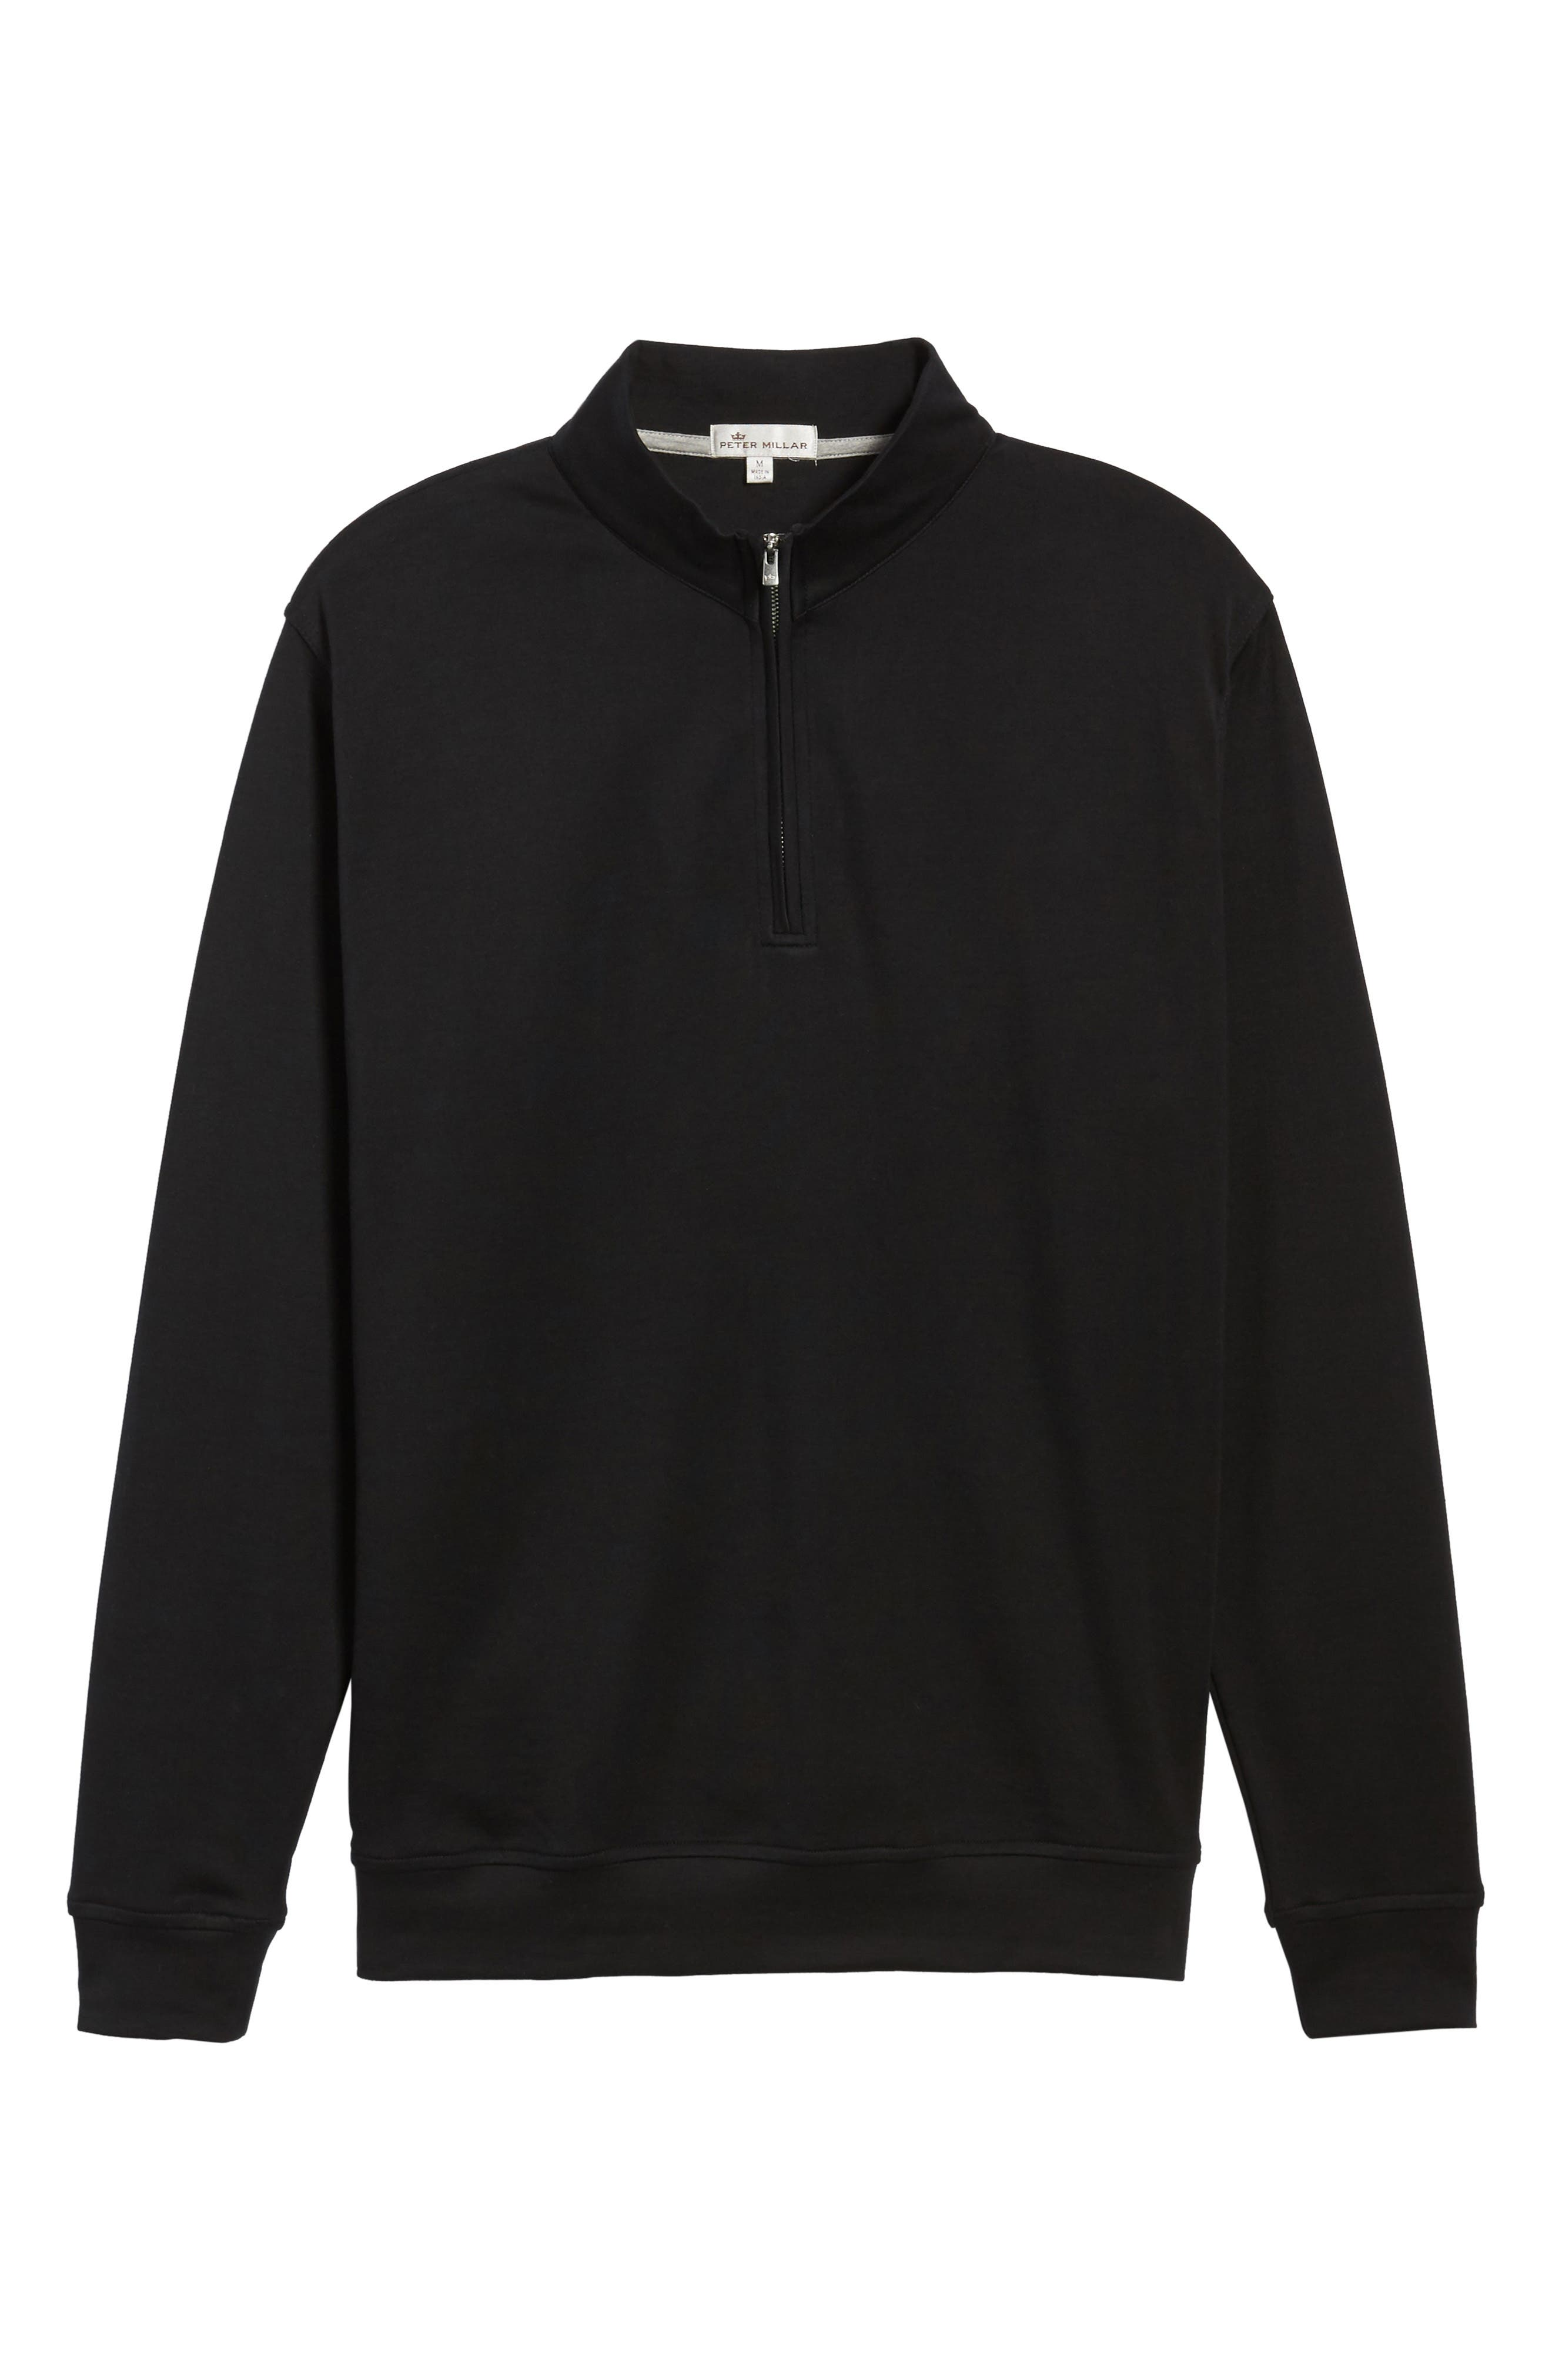 Quarter Zip Pullover,                             Alternate thumbnail 6, color,                             001